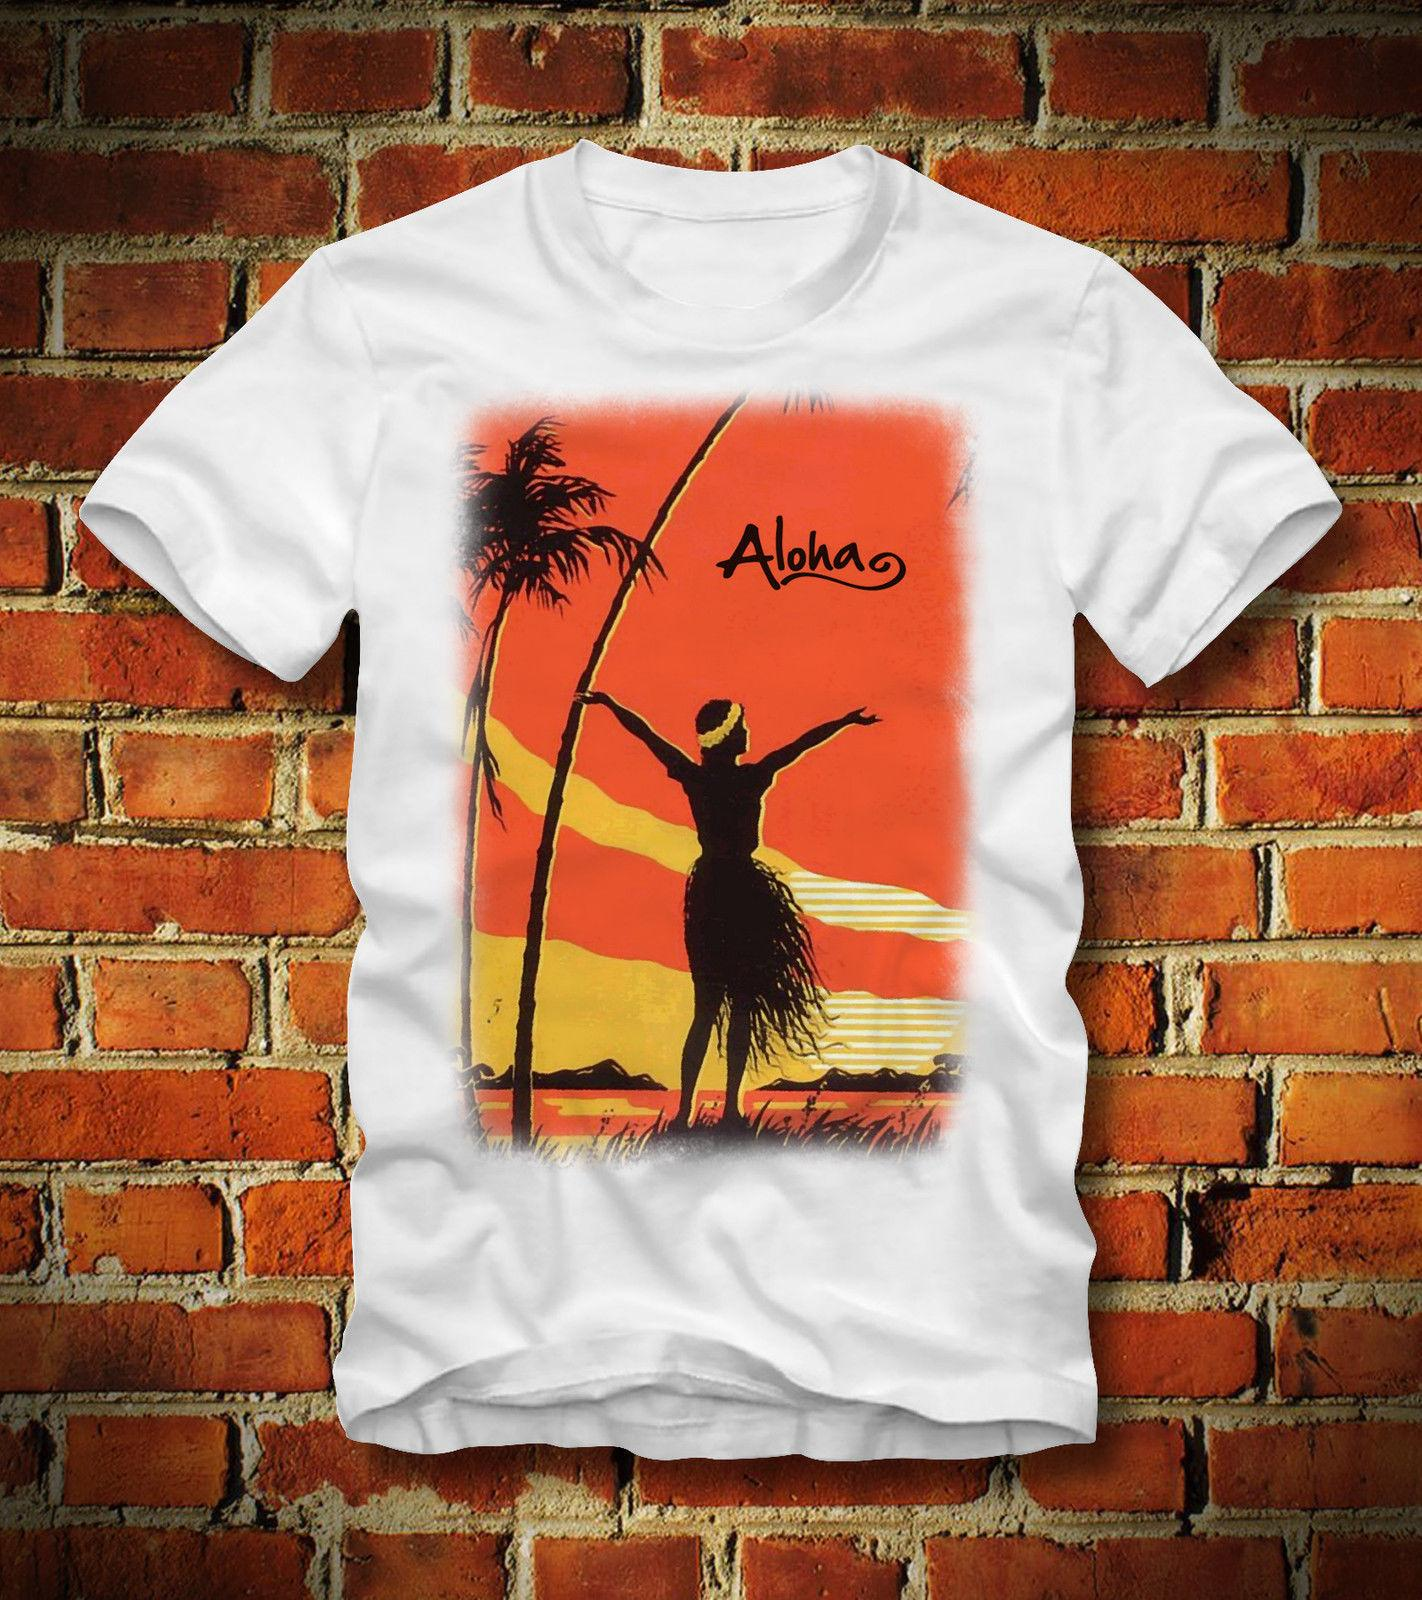 4477277032 BOARDRIPPAZ T SHIRT ALOHA HAWAII HULA SEXY GIRL SUNSET WAIKIKI BEACH STRAND  SURF